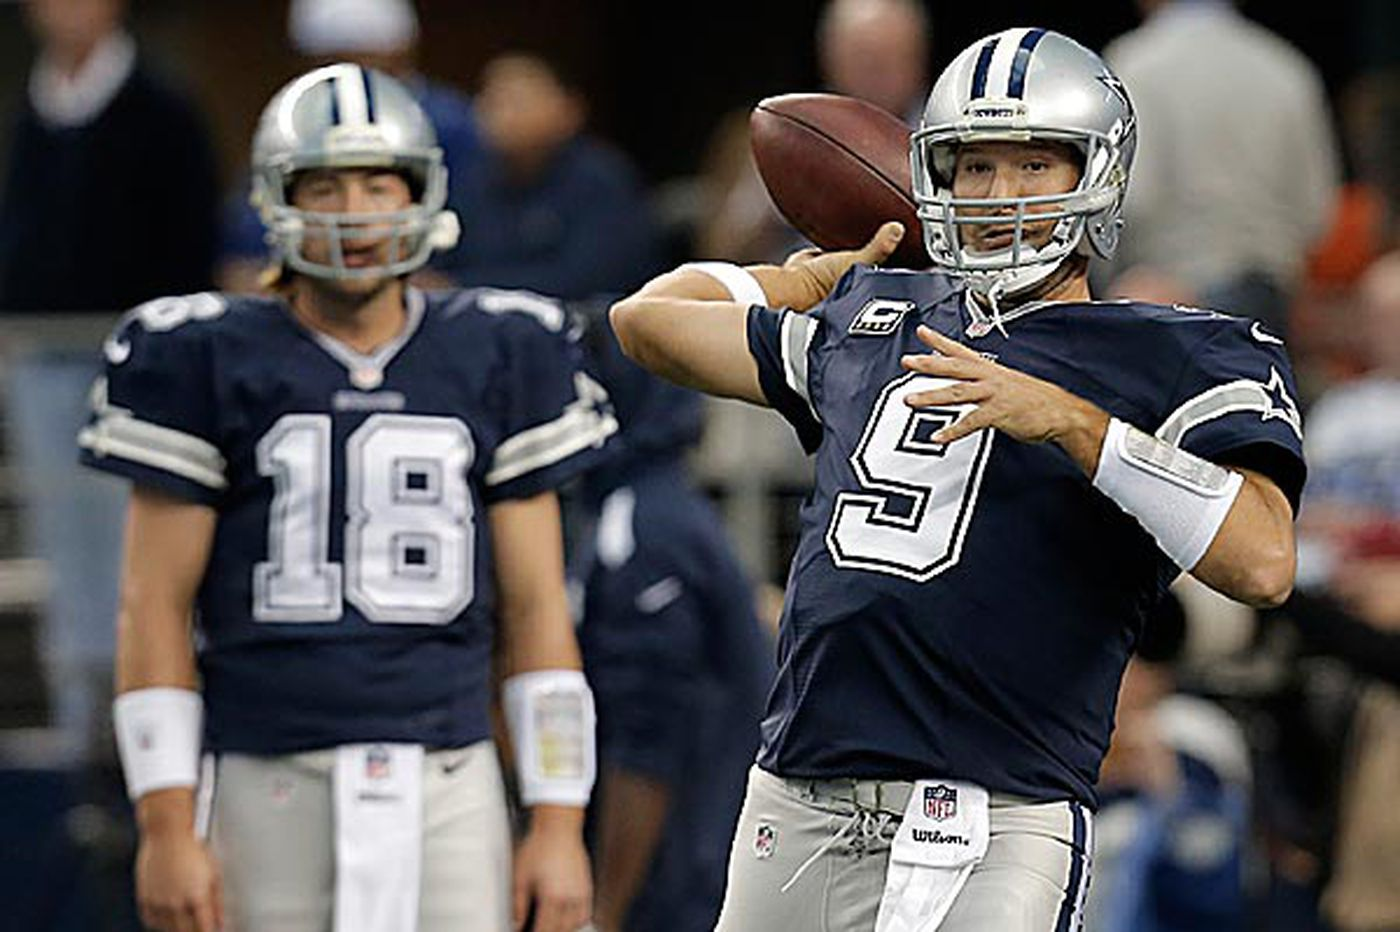 Cowboys not ruling out Romo yet